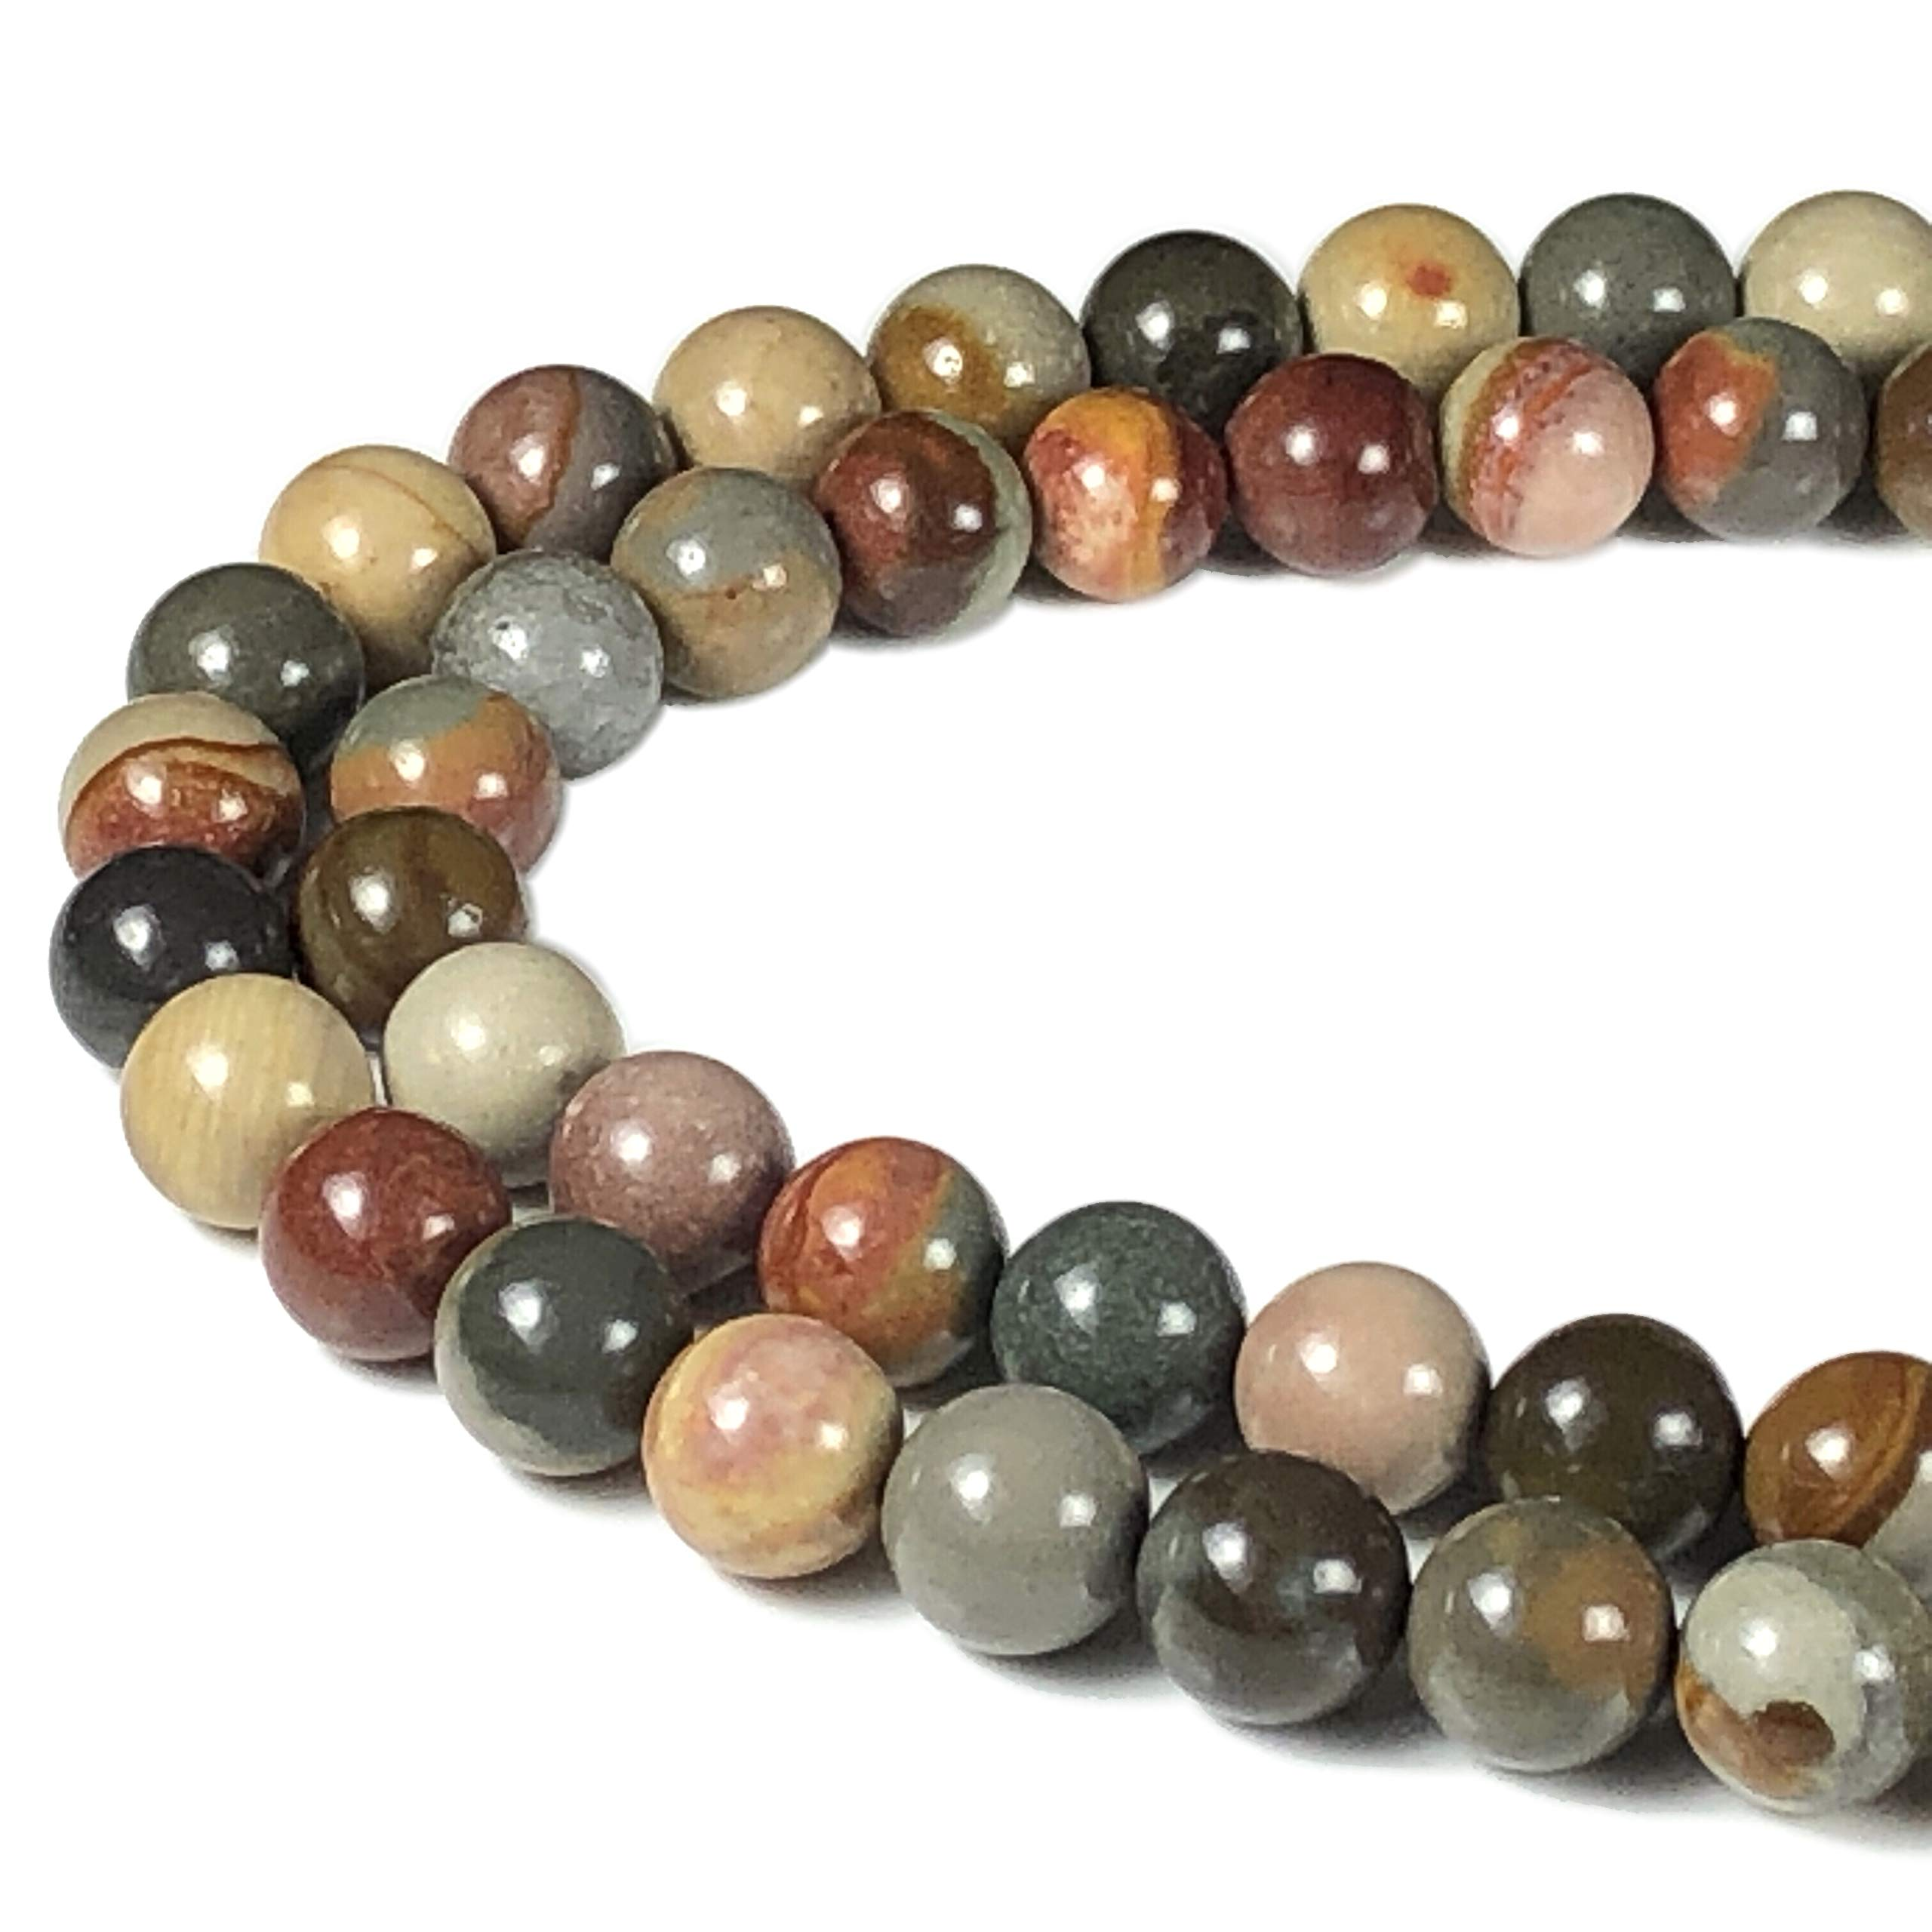 [ABCgems] Madagascan Polychrome Jasper AKA Royal Savannah Jasper (One of The Rarest Jaspers in The World) 8mm Smooth Round Beads for Beading & Jewelry Making by ABC GEMS USA